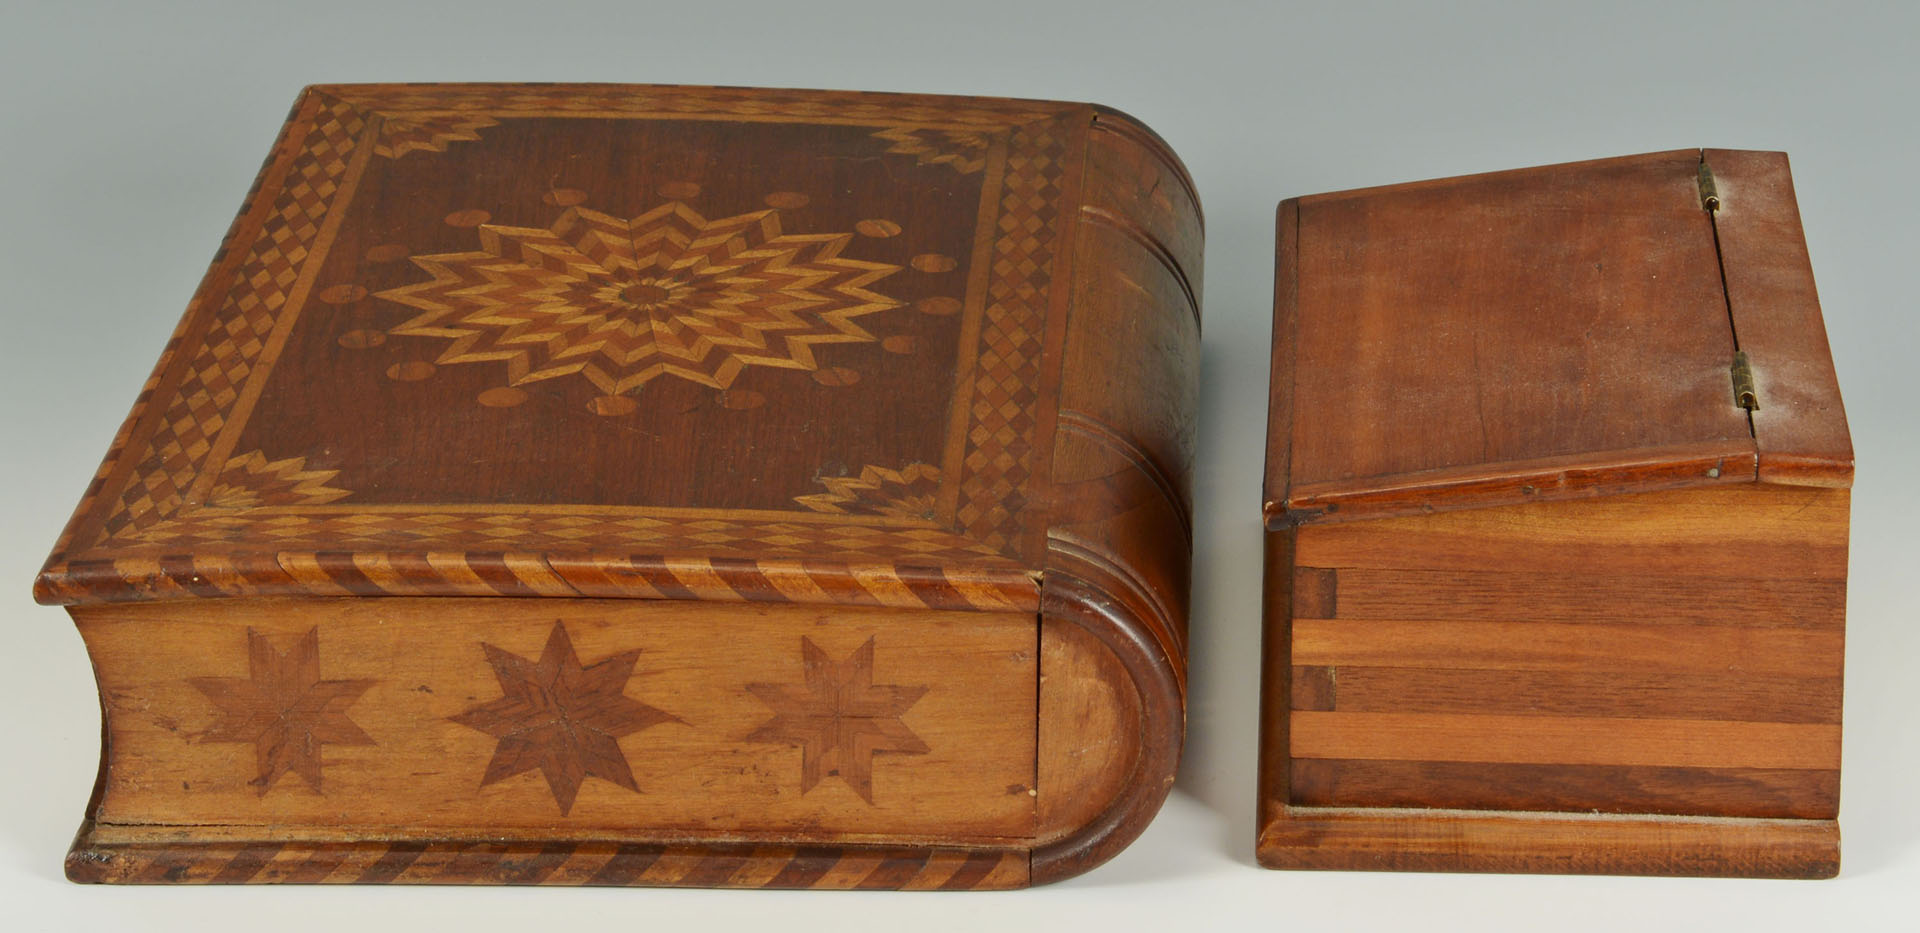 Lot 70: Lot of two folk art inlaid boxes, one book box